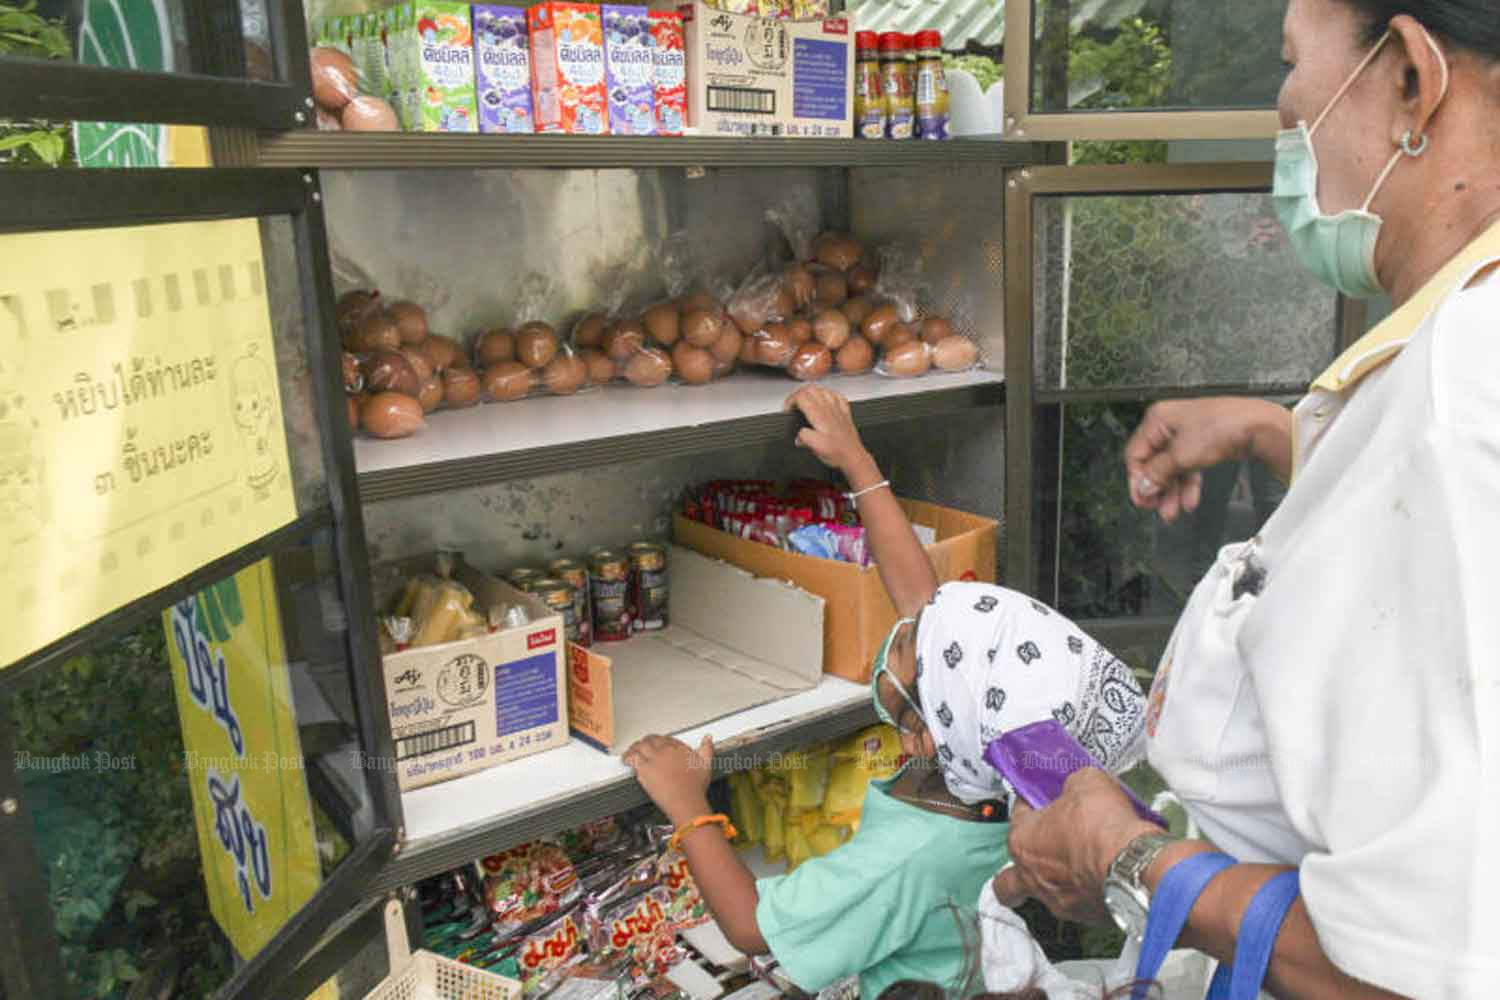 A child reaches for donated eggs in a 'tu pan suk', or a happiness-sharing pantry, in front of the Department of Agriculture in Bangkok. An instruction, apparently aimed to regulate people queuing up for donations, reads 'three items for each person, please'. Arnun Chonmahatrakool